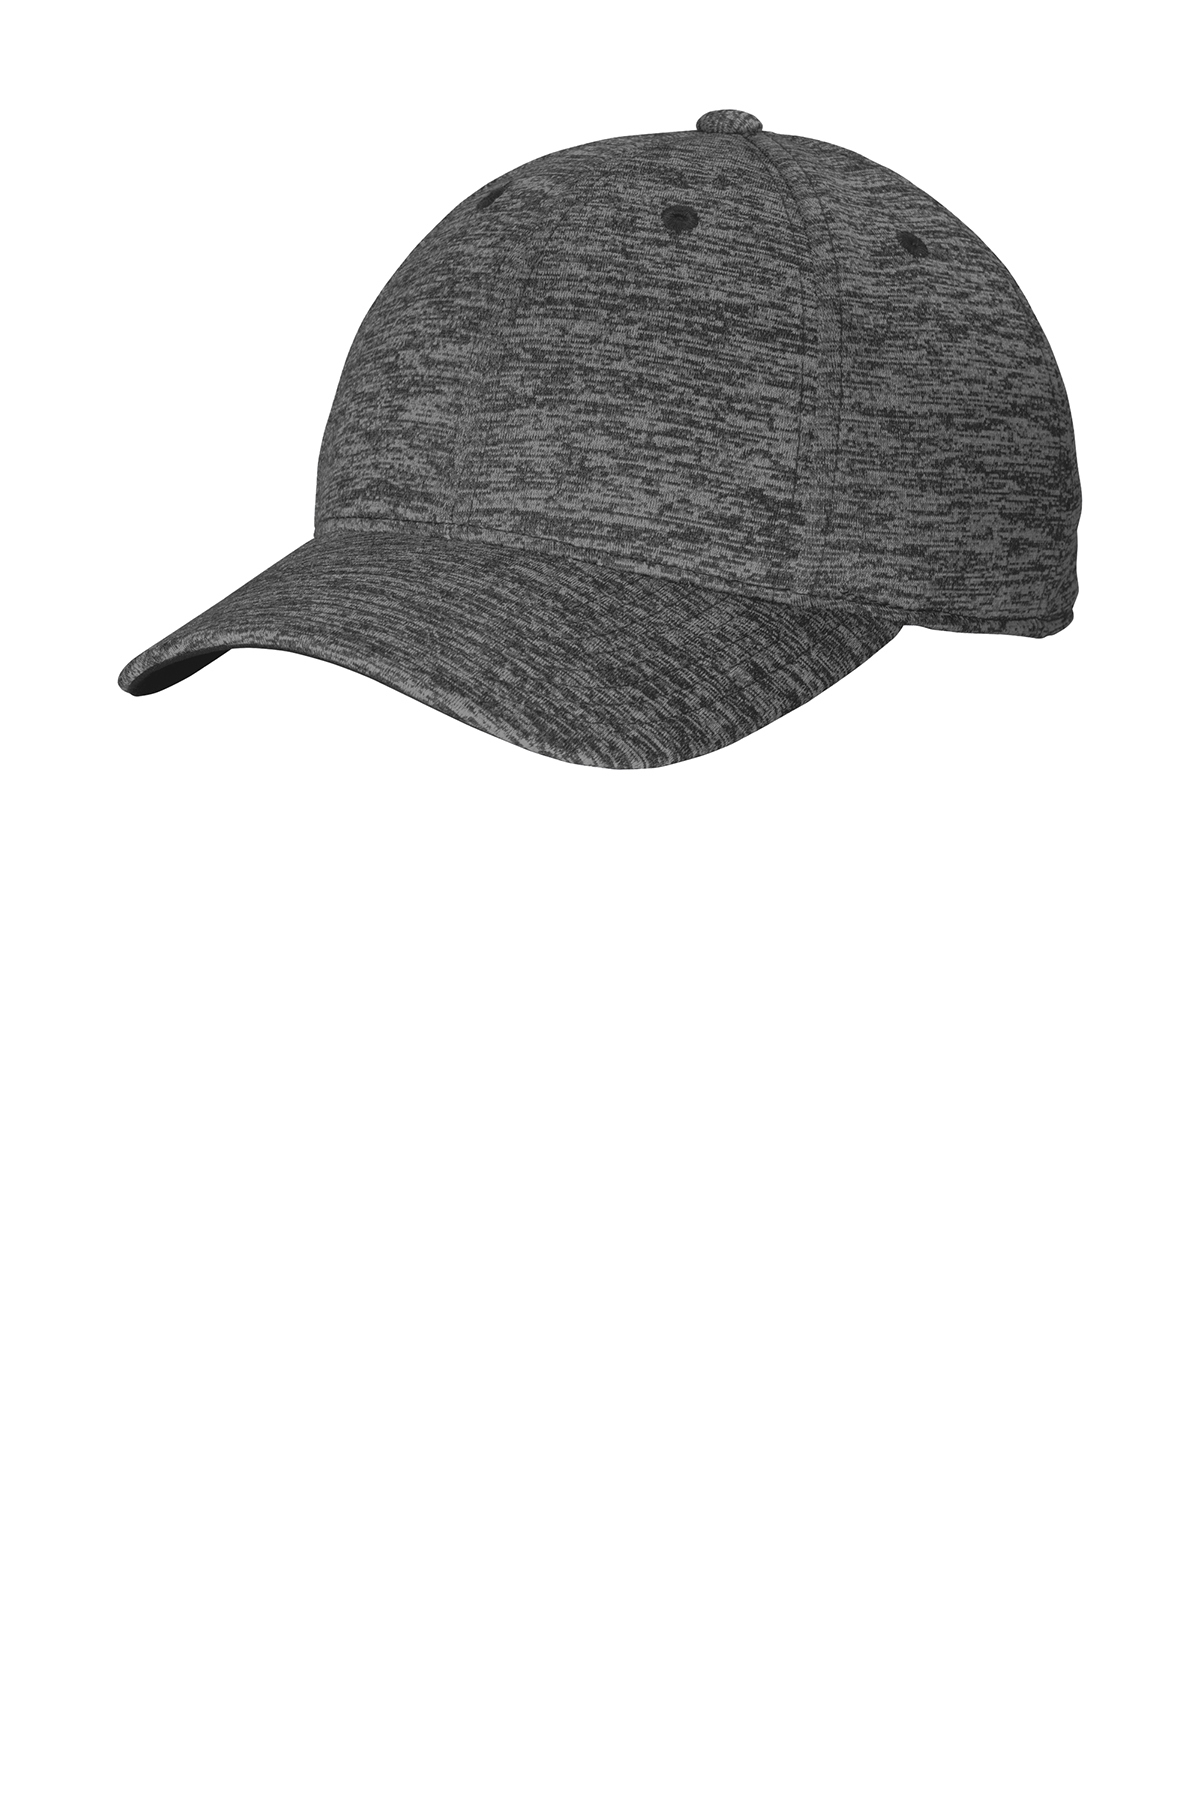 Sport-Tek STC34 - PosiCharge Electric Heather Cap